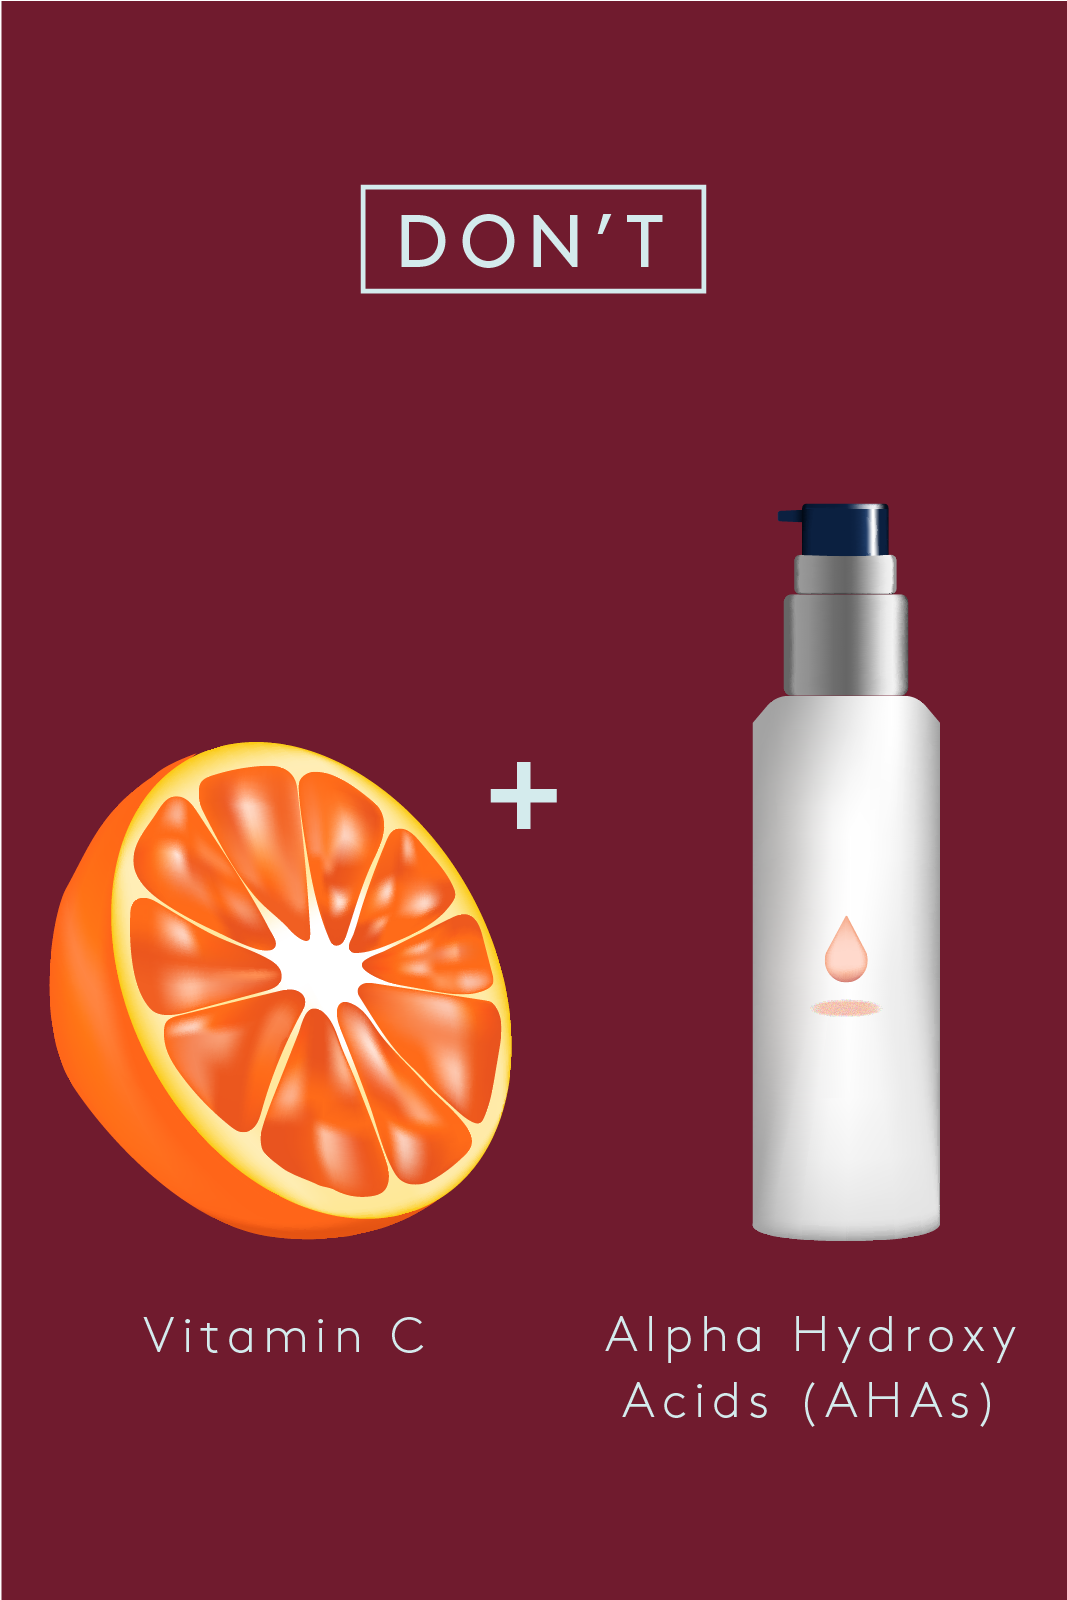 Cocktail Your Way To The Perfect Skin-Care Regimen  #refinery29  http://www.refinery29.com/how-to-mix-ingredients-vitamins-skin-care-regimen#slide-7  Don't: Vitamin C + Alpha Hydroxy Acids (AHAs)AHAs can alter the pH level of vitamin C, destabilizing it and rendering this powerful antioxidant (and consequently the beauty product you shelled out some dough for) ineffective. And if you suffer from rosacea or extreme dryness, the excess acidity can exacerbate your condition, says Chin....